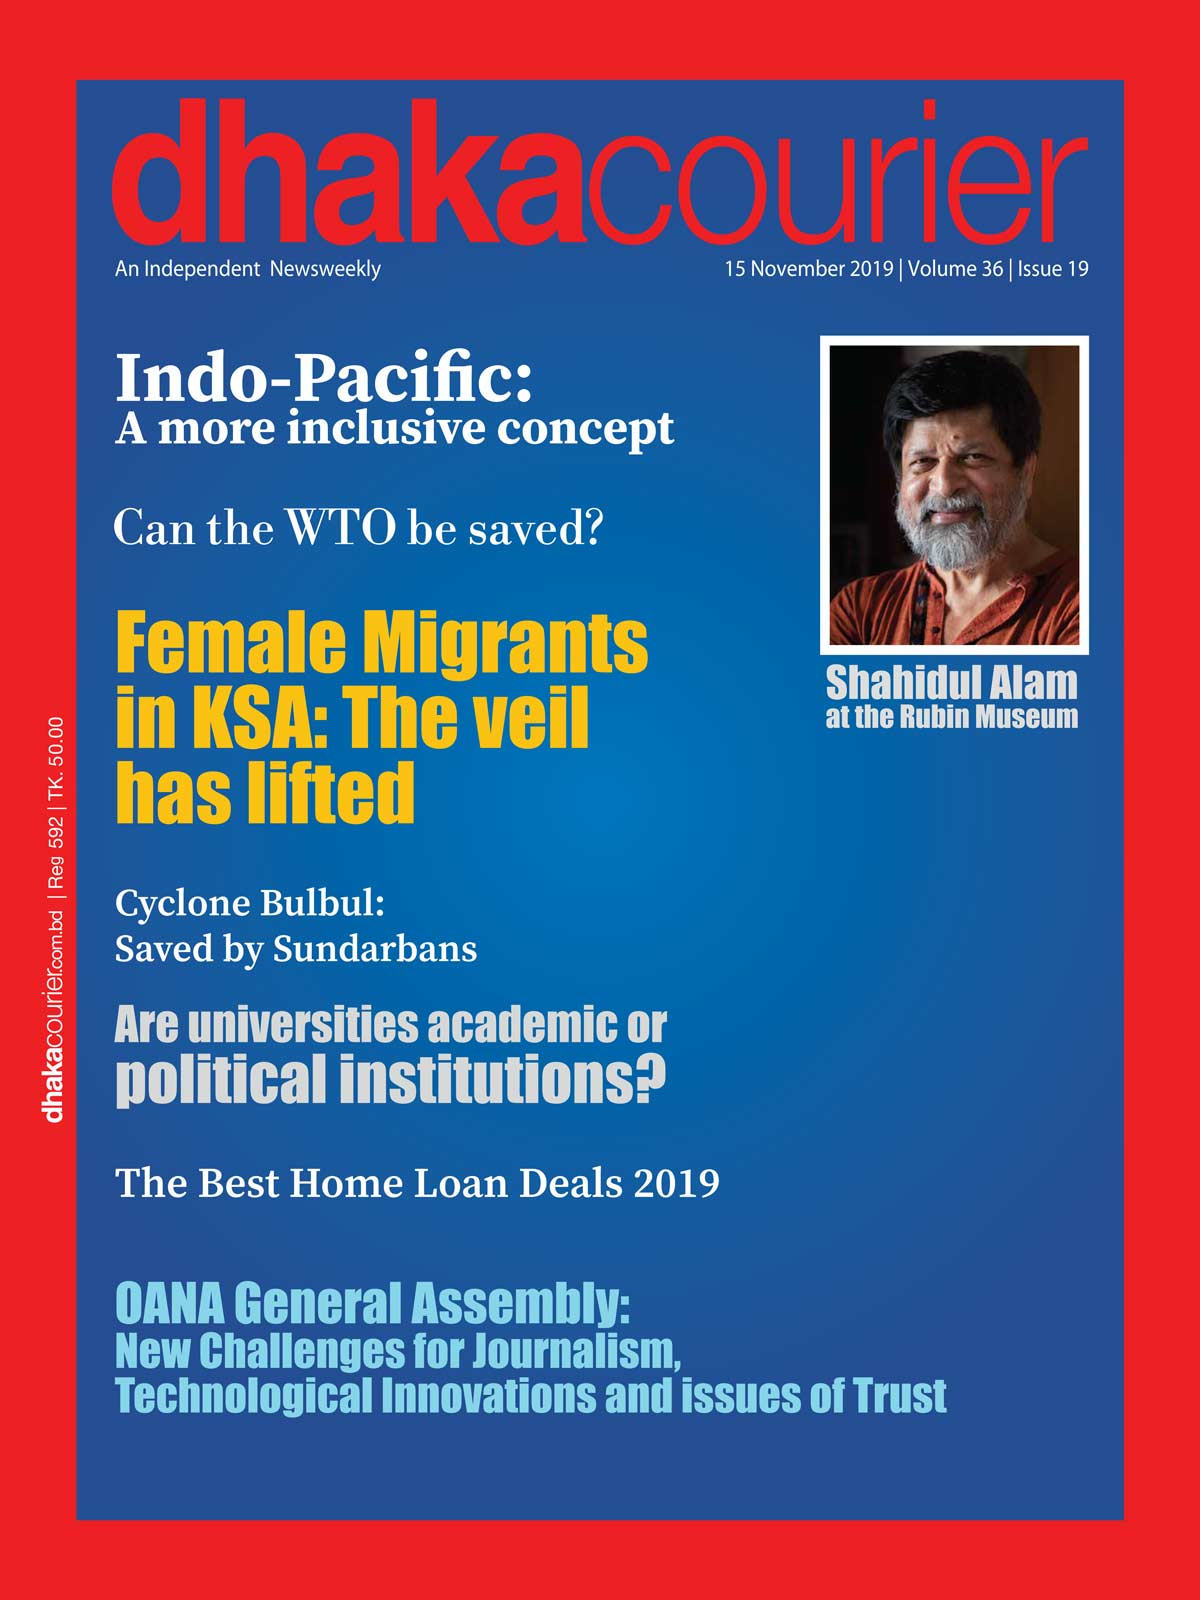 DhakaCourier Vol 36 Issue 19